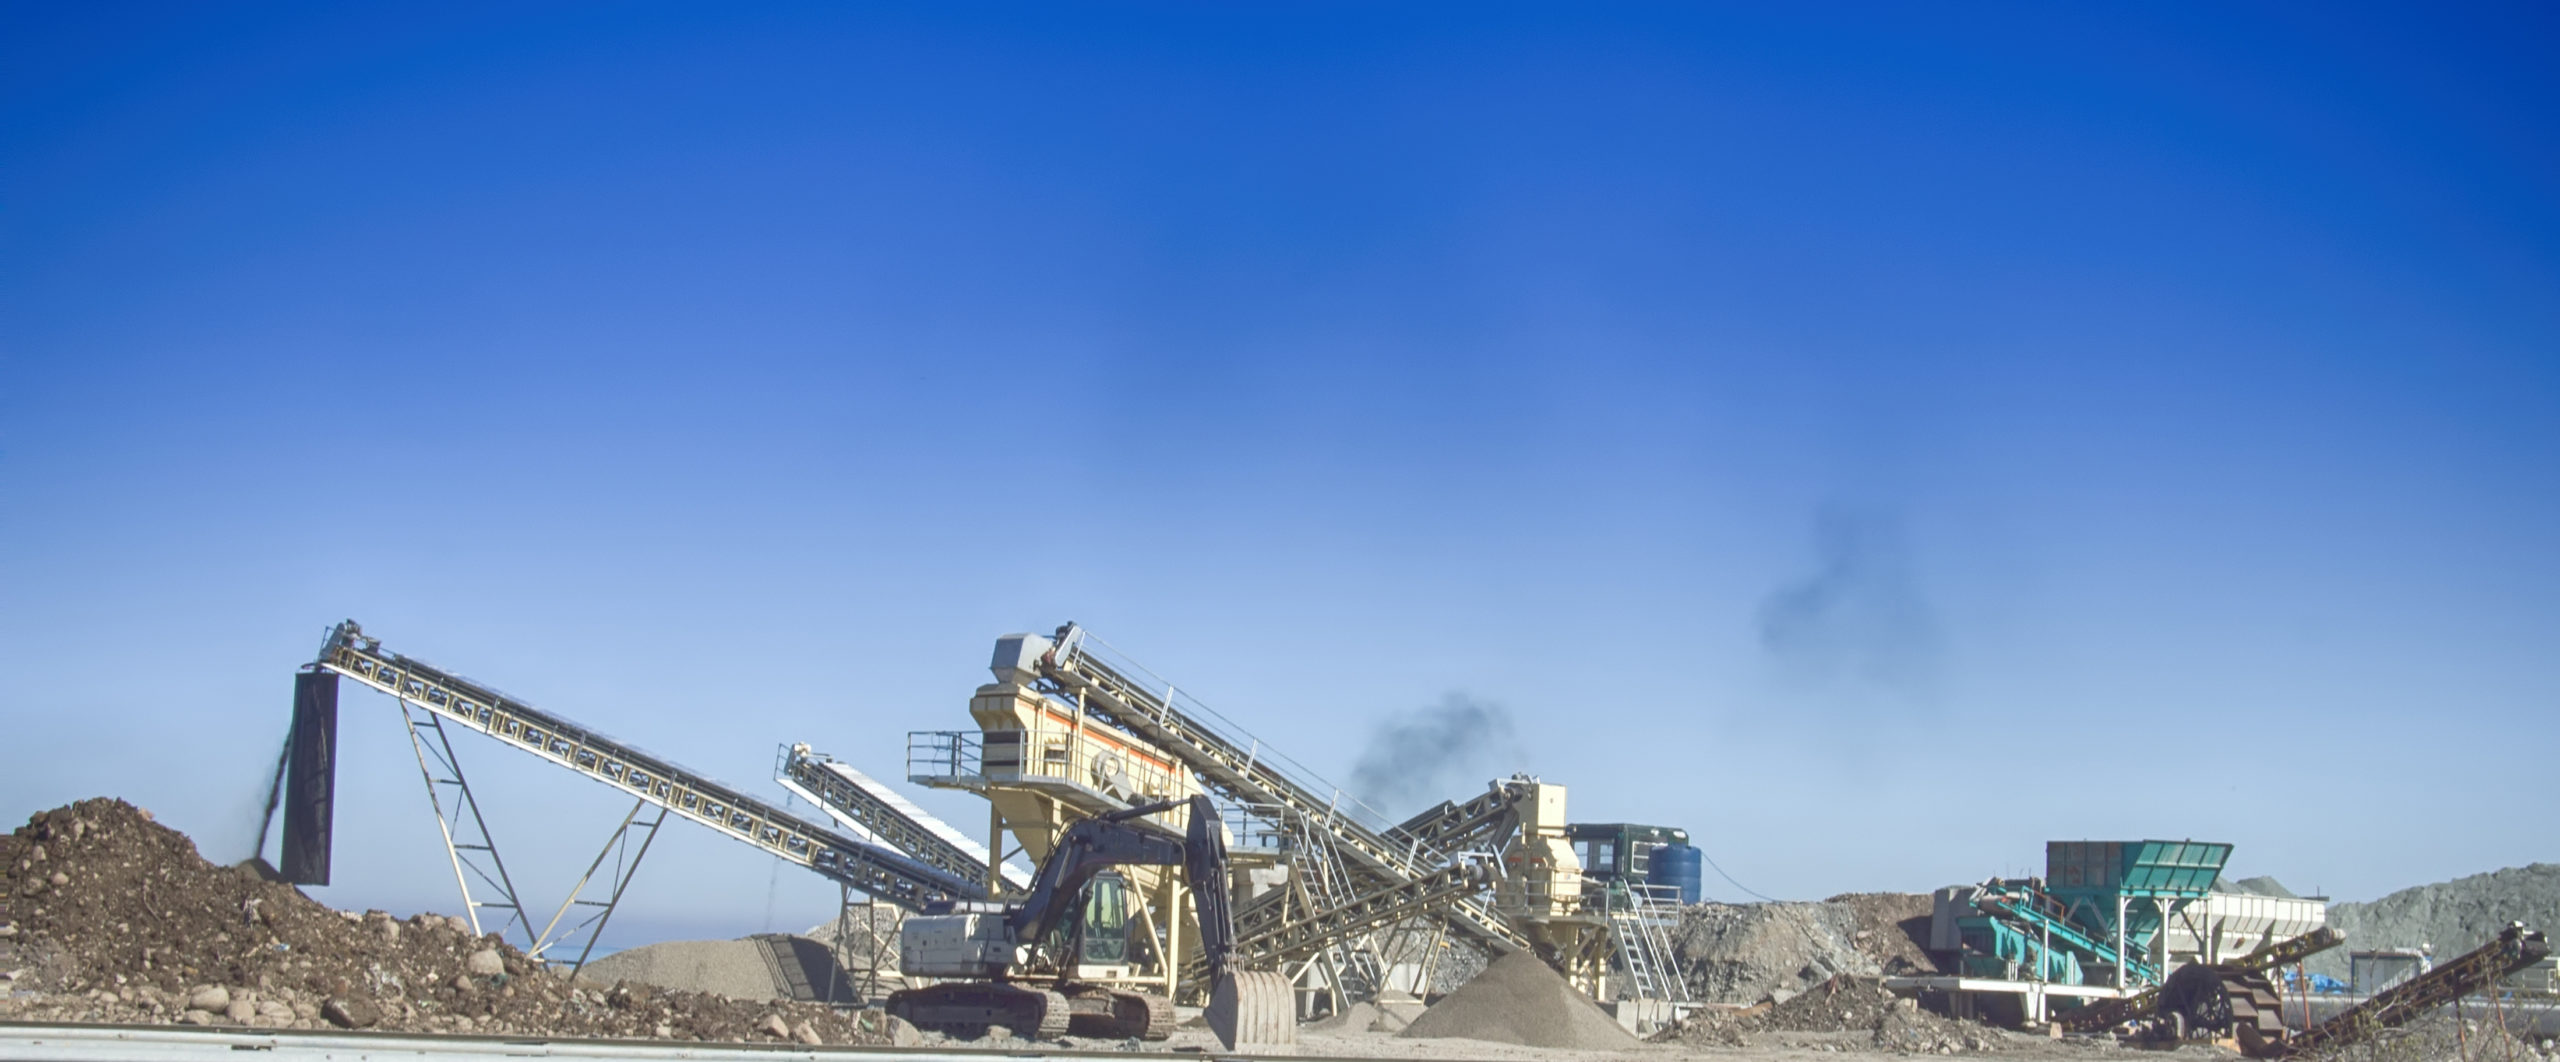 Meet Increased Demand for Aggregate Production with Fenner Dunlop's Longest Lasting Conveyor Belts